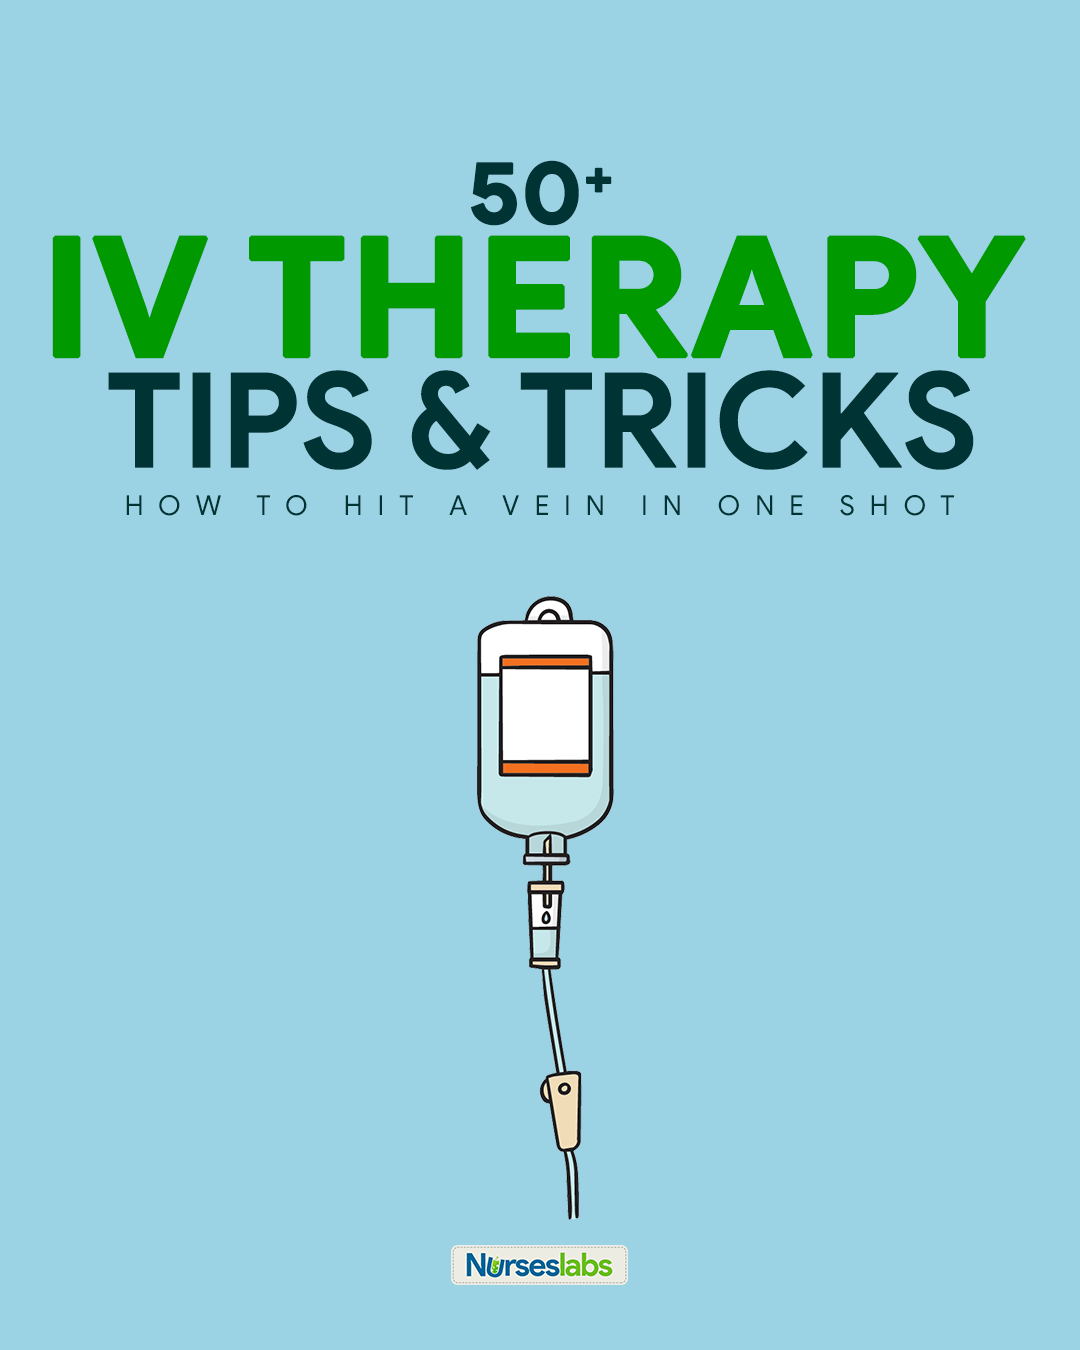 50+ IV Therapy Tips and Tricks for Intravenous Nurses